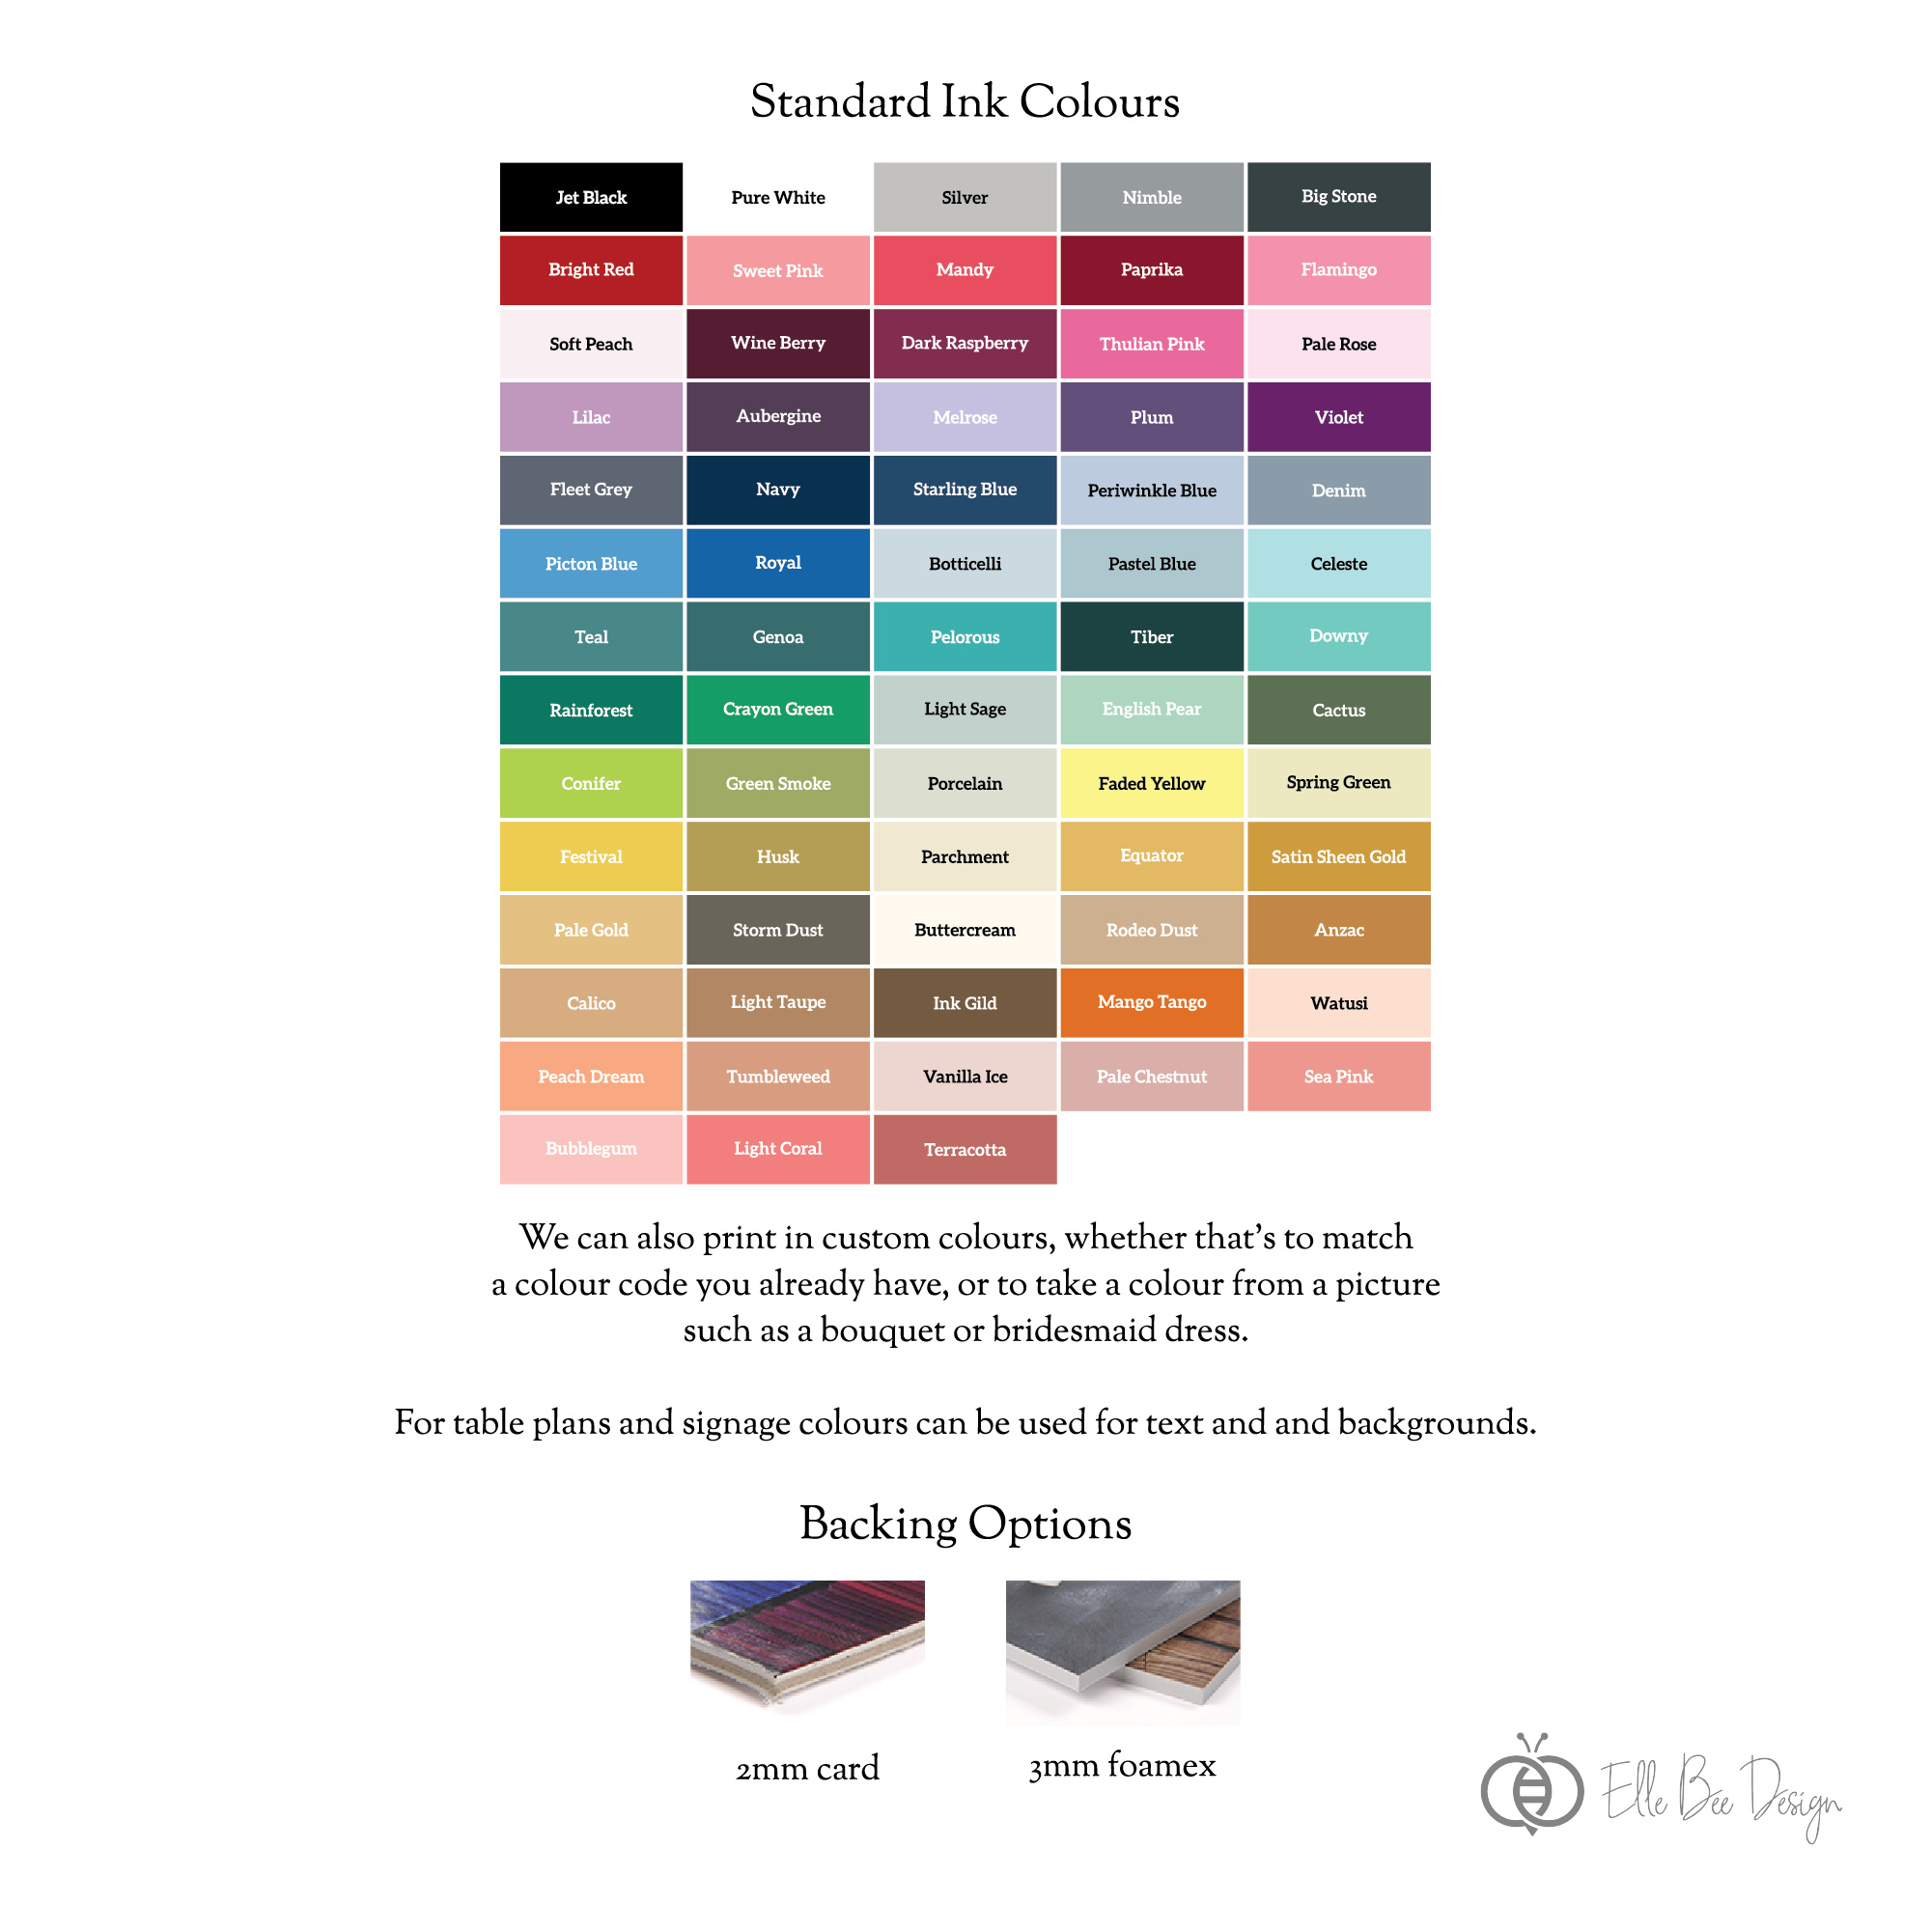 """Details - Our Table Plans are professionally printed on a choice of three substrates. Text, accents, background colours and borders are all colour customisable.- Available in either A2 (420mm x 594mm / 16.5"""" x 23.4"""") or A1 (594mm x 841mm / 23.4"""" x 33.1""""). A0 available upon request.- Discounted bundle available with either or both of a welcome sign and order of the day- Can be printed on 2mm card or 3mm foamex- A2 table plan includes welcome banner, top table and up to 8 tables- A1 table plan includes welcome banner, top table and up to 15 tables- Can be printed with table numbers or custom names- Choice of 60+ colours for printing- One-on-one design with comprehensive digital proofing process- Easel not supplied"""